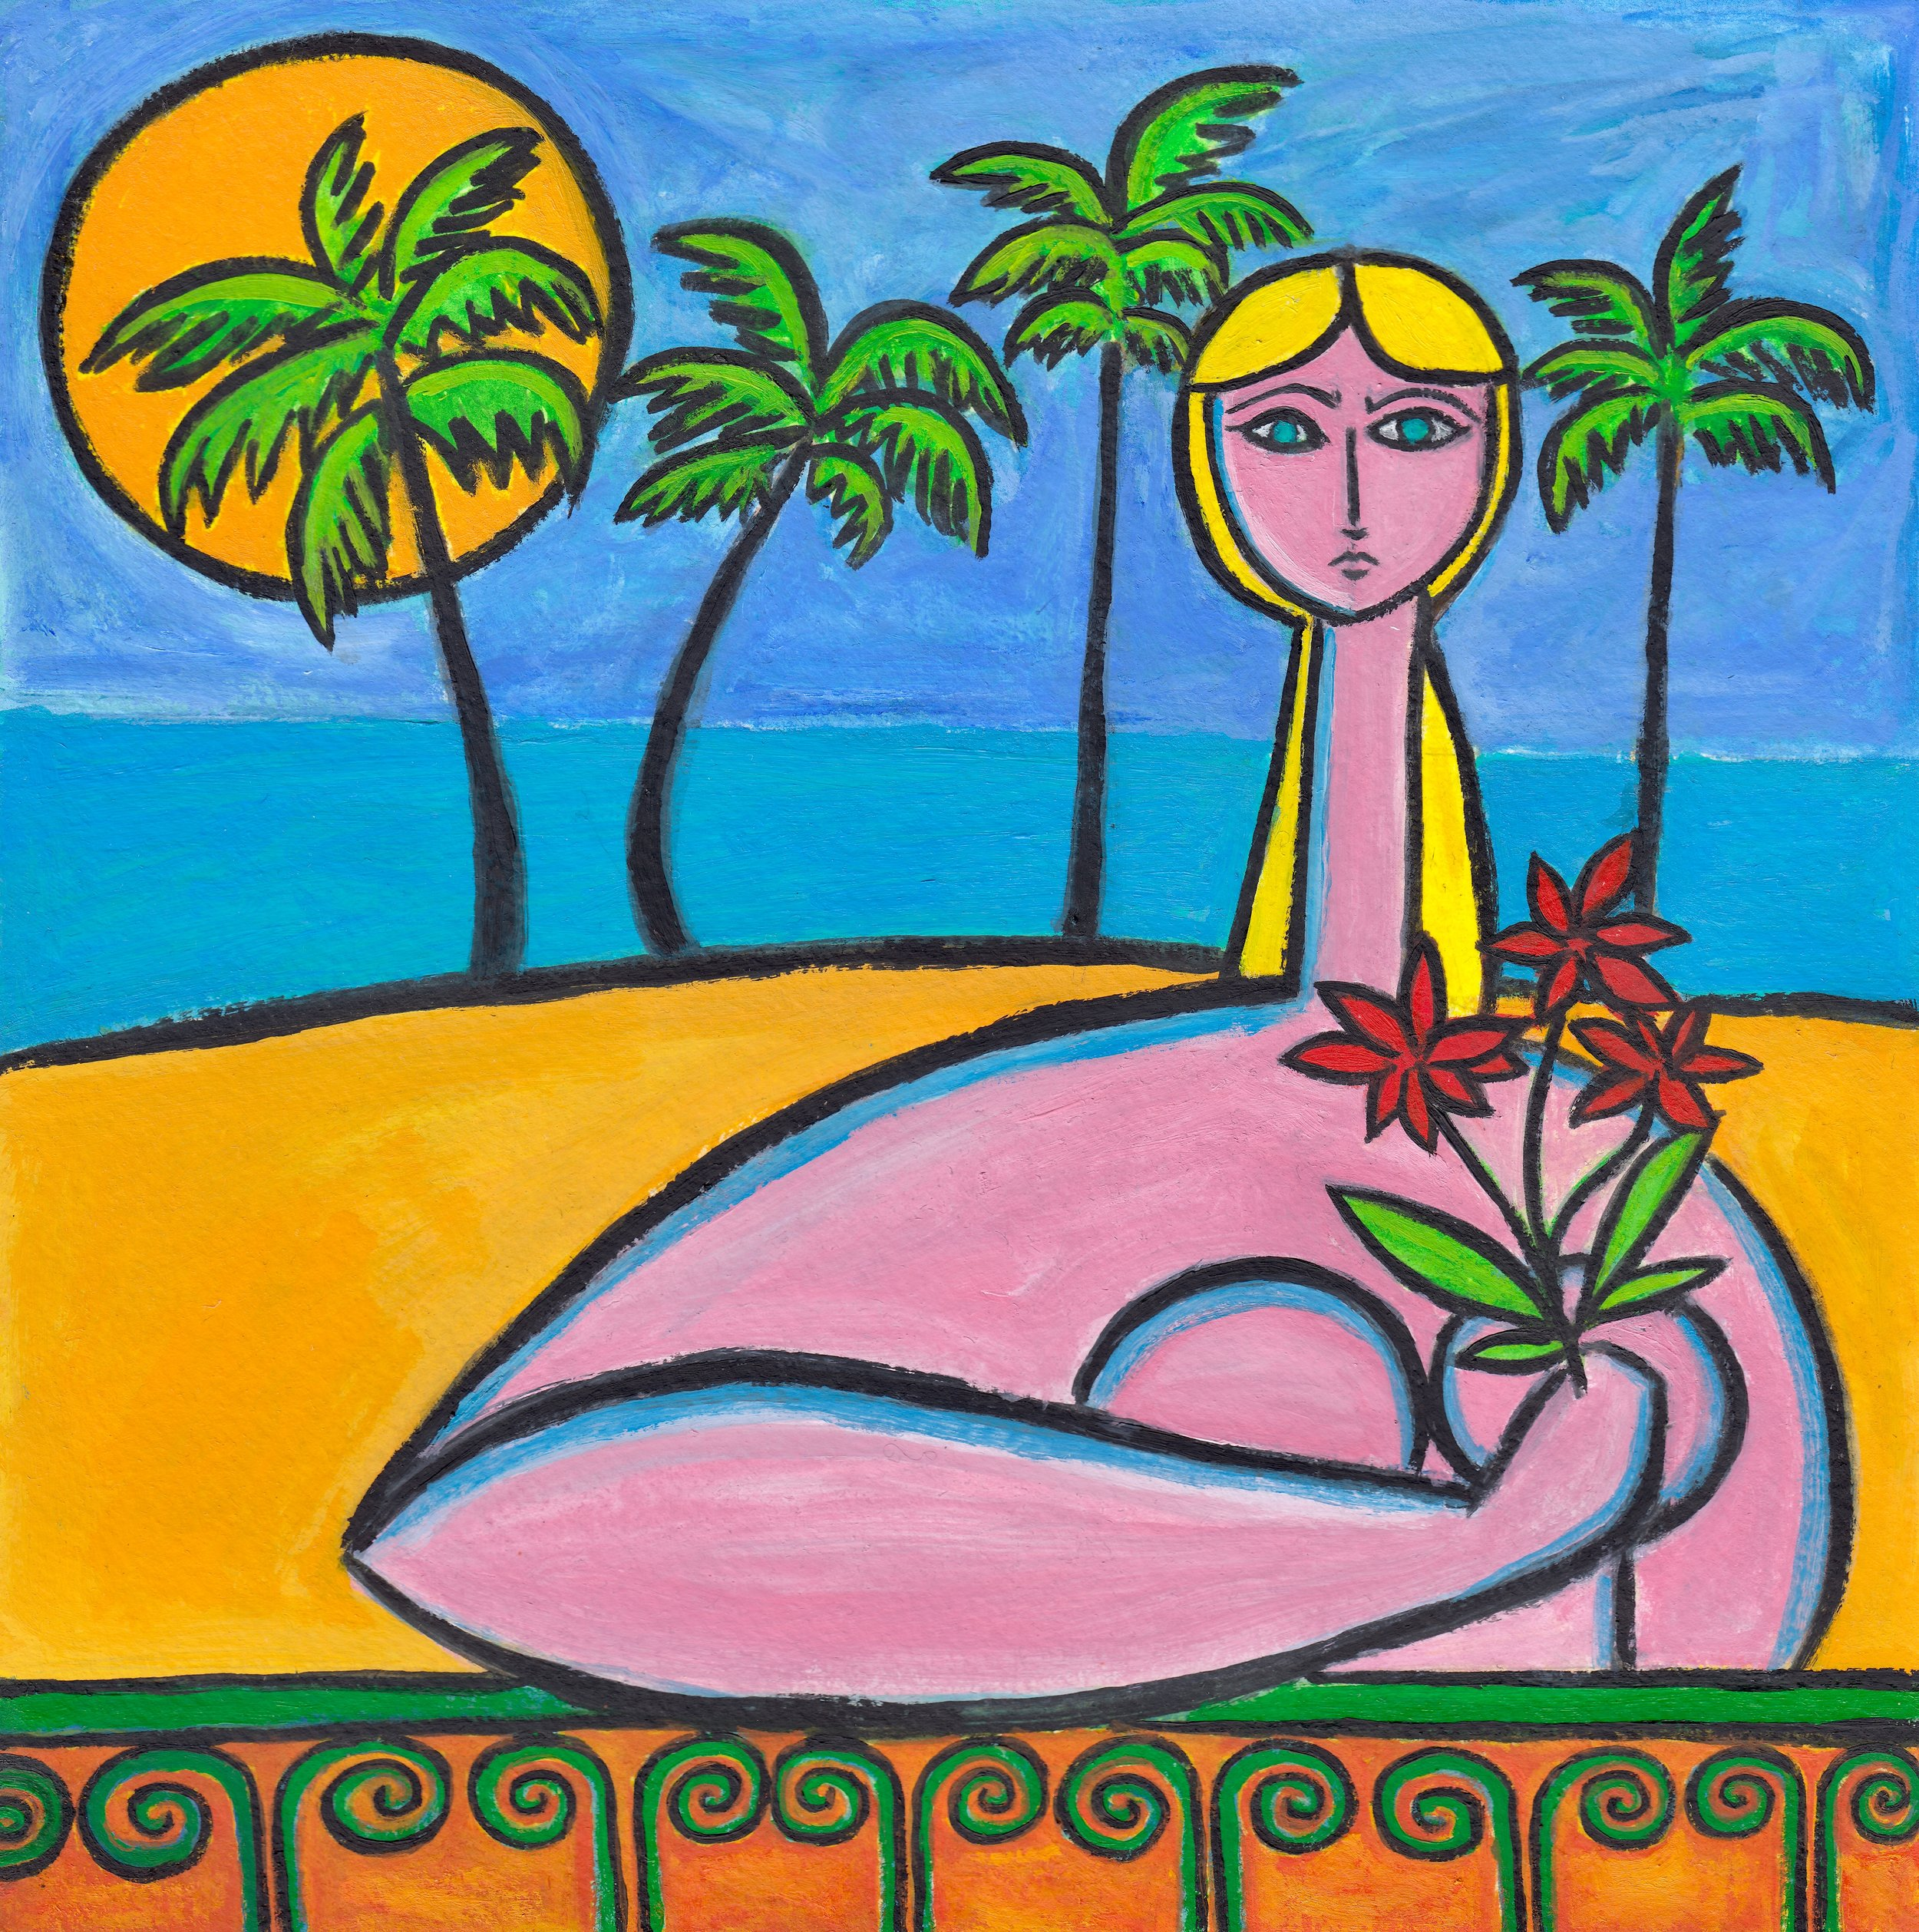 beachside-with-red-flowers-painting-paul-zepeda-wet-paint-nyc.jpg